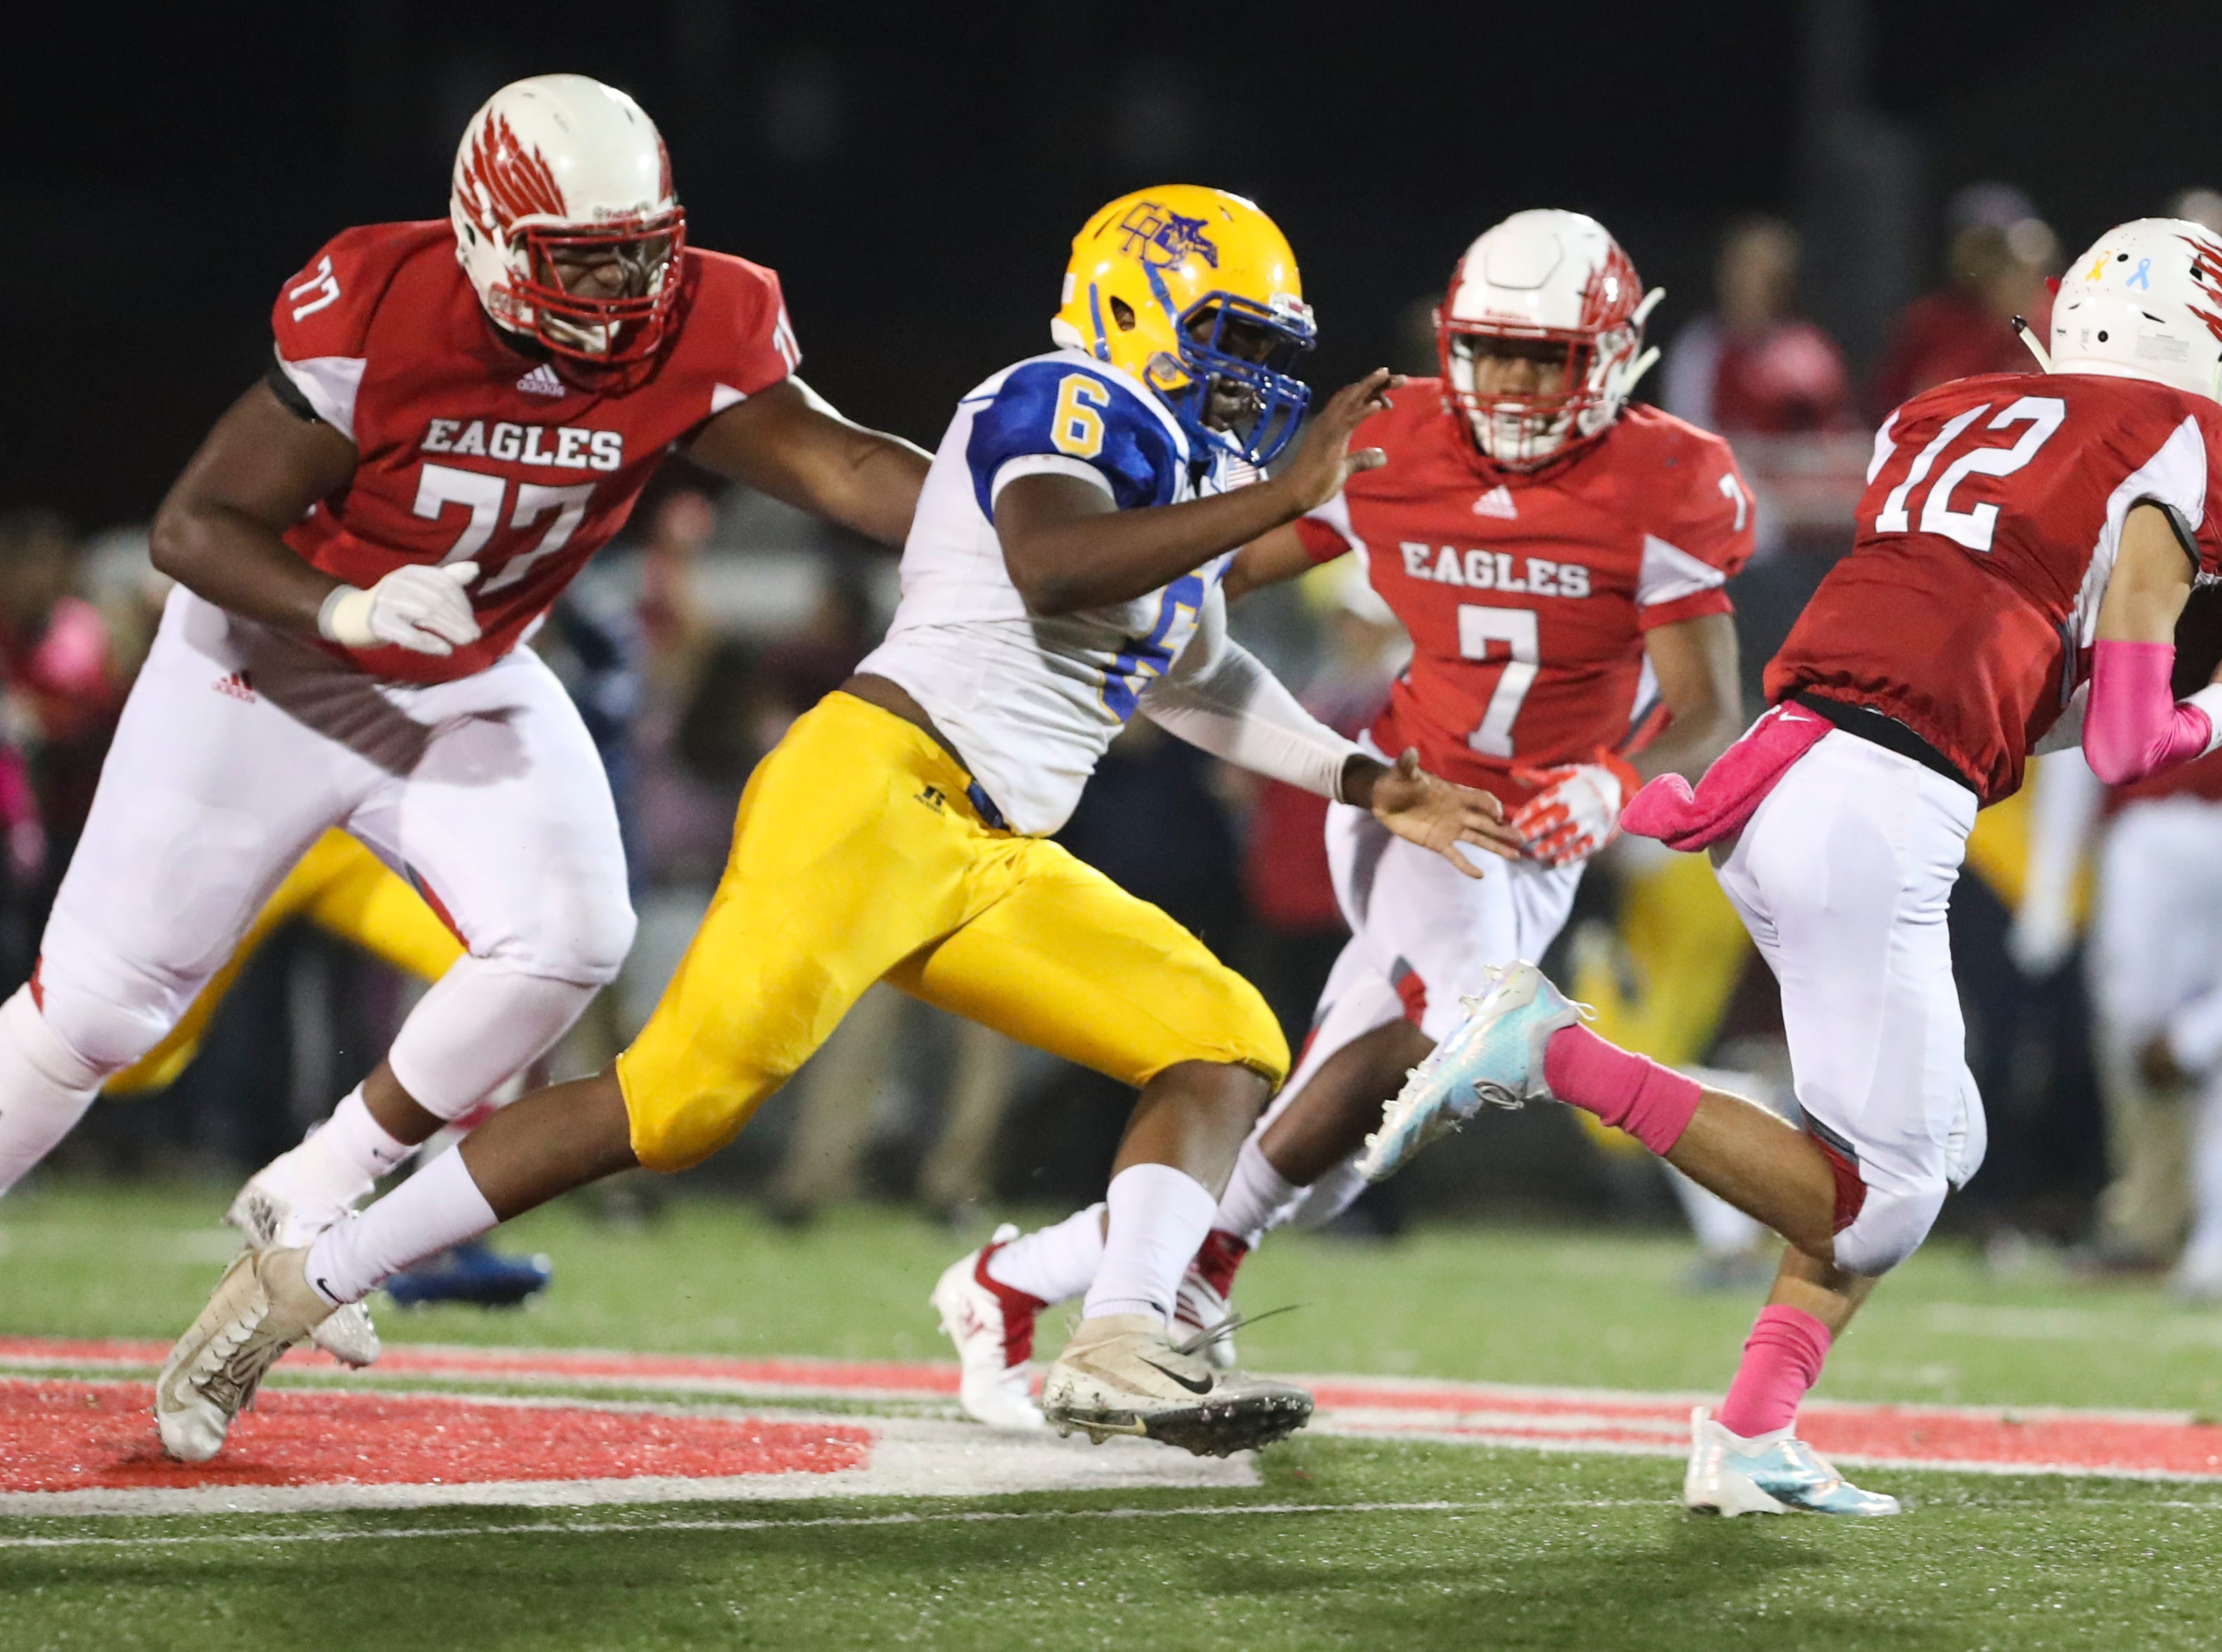 Caesar Rodney's William Burke (6) pursues Smyrna quarterback Aidan Sanchez as he is in turn pursued by Saleem Wormley (77) and Stephen Whaley in the first quarter at Smyrna Friday.